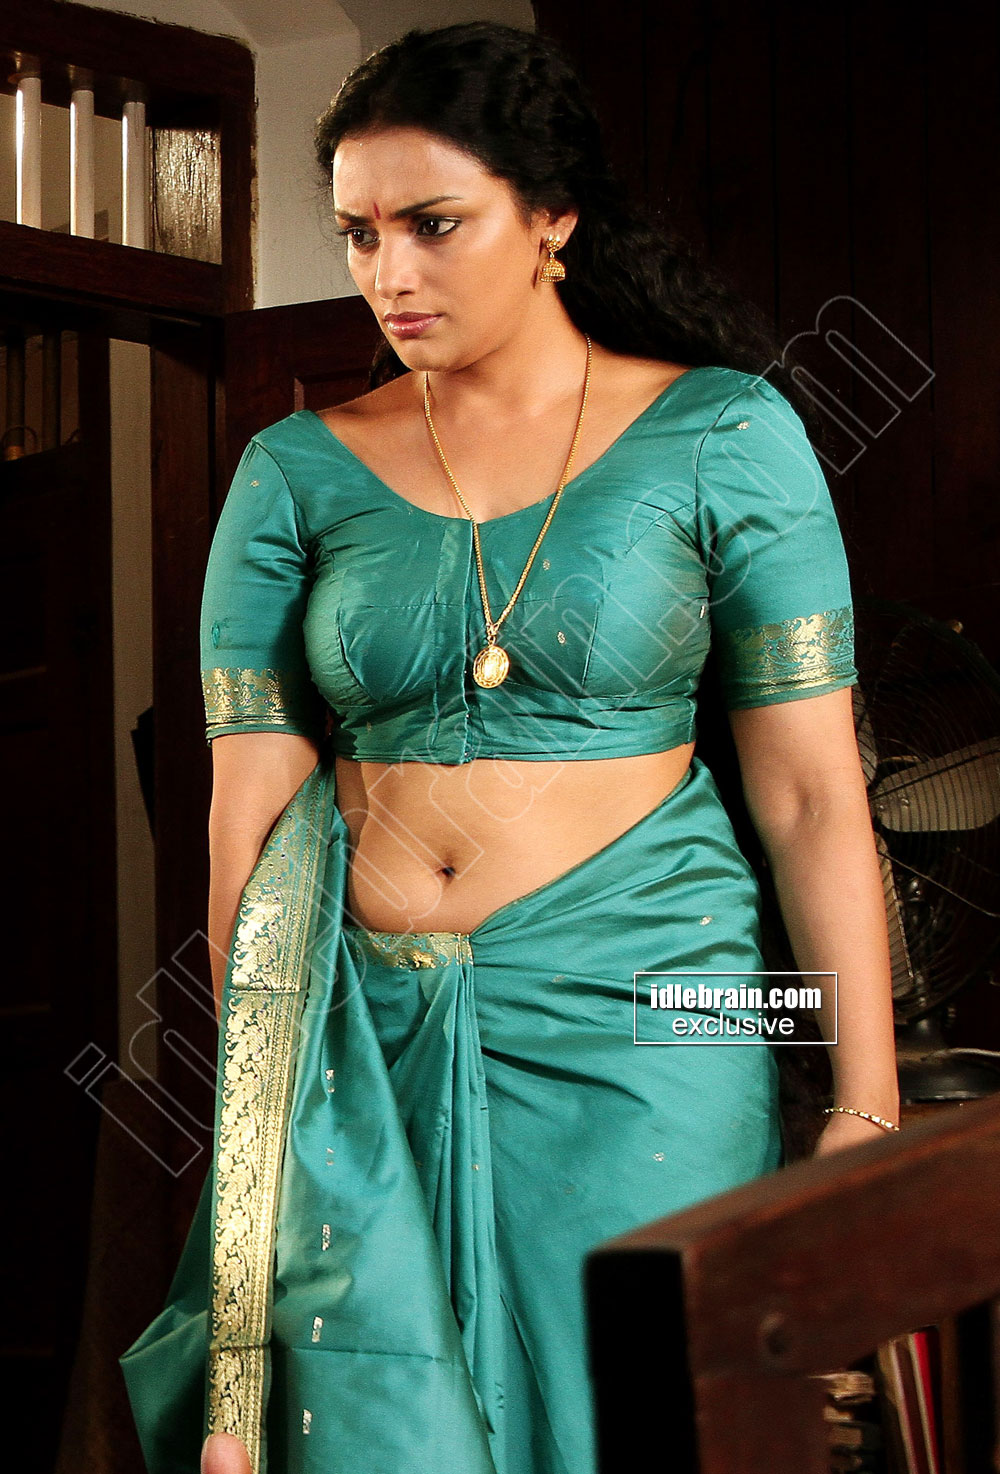 sree devi total nude pictures